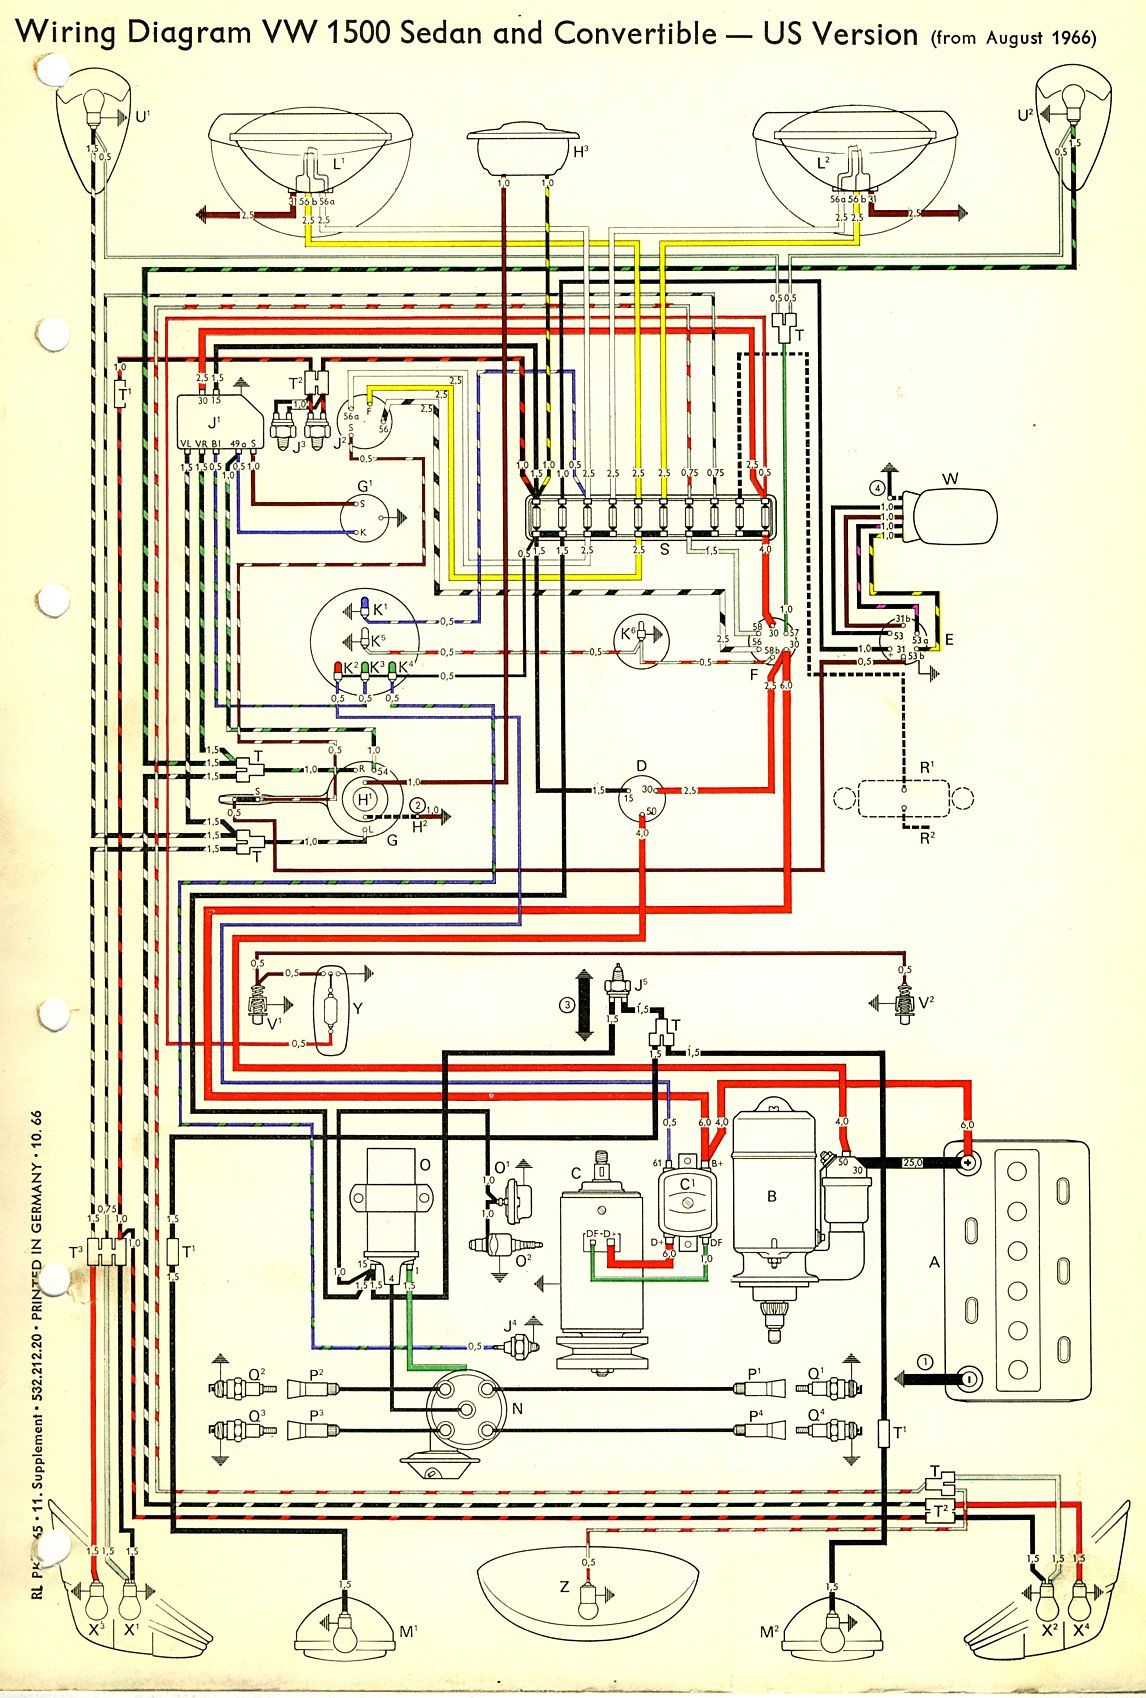 1adf990c0efb617c789fdd21338448b0 1967 beetle wiring diagram (usa) thegoldenbug com best 1967 vw vw wiring diagrams at couponss.co